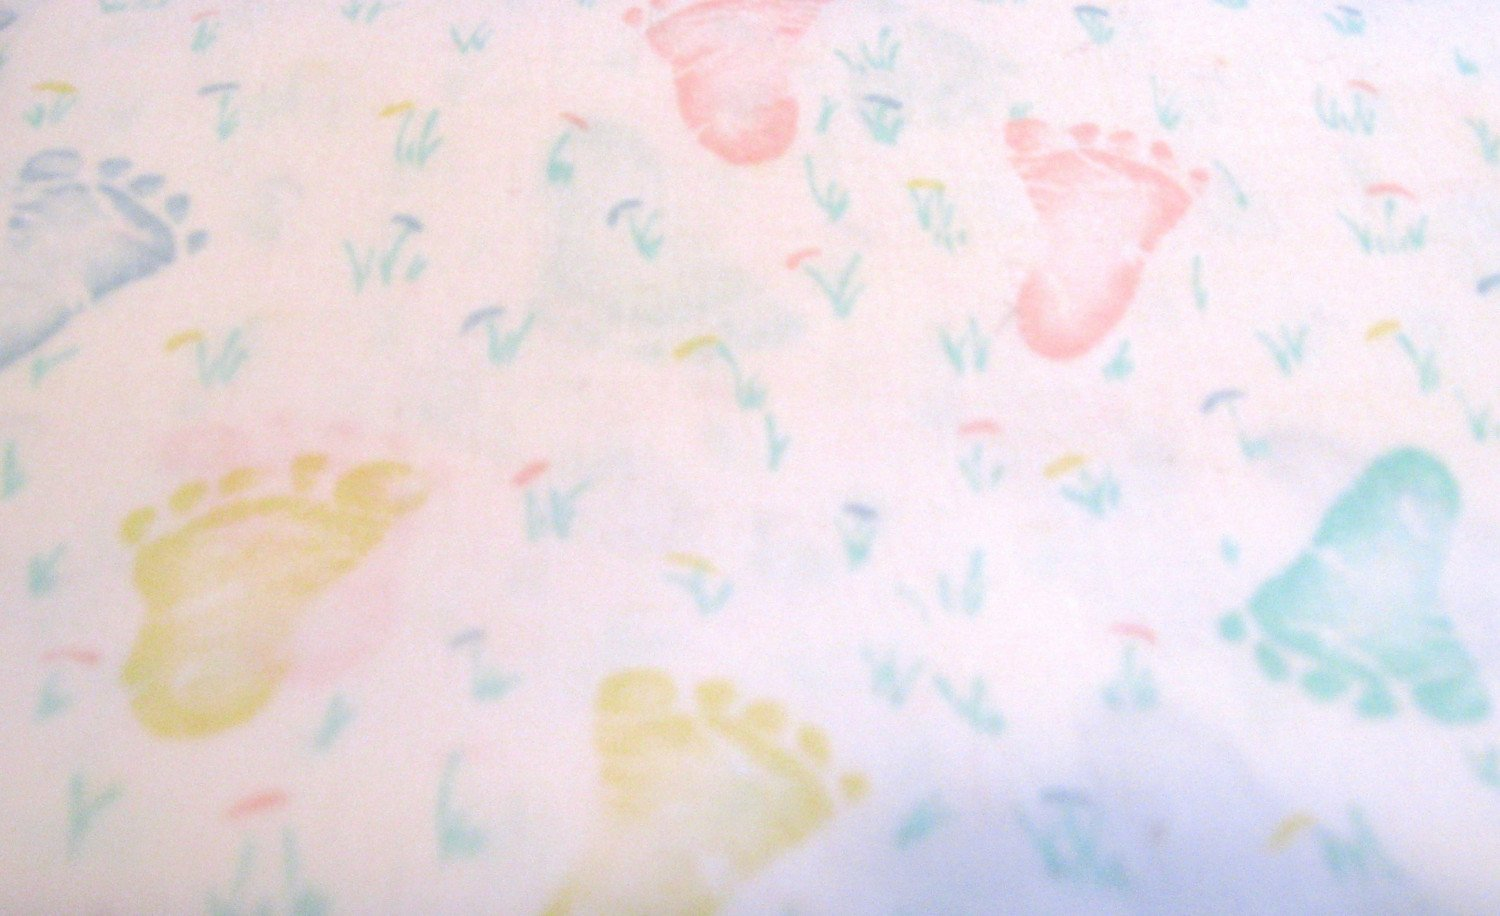 Baby Footprint Backgrounds wallpaper wallpaper hd background 1500x916